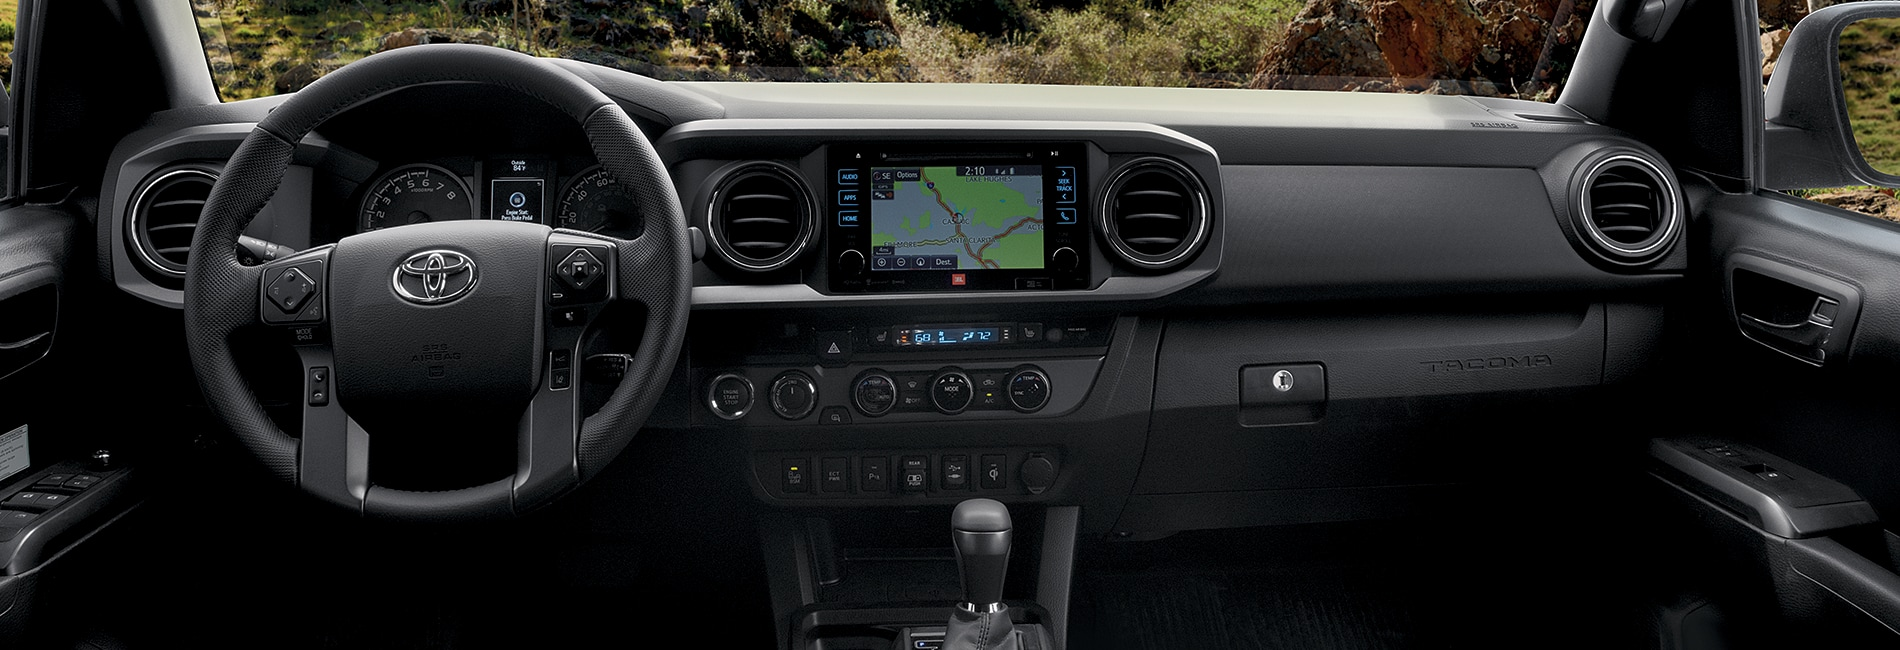 Toyota Tacoma Interior Vehicle Features